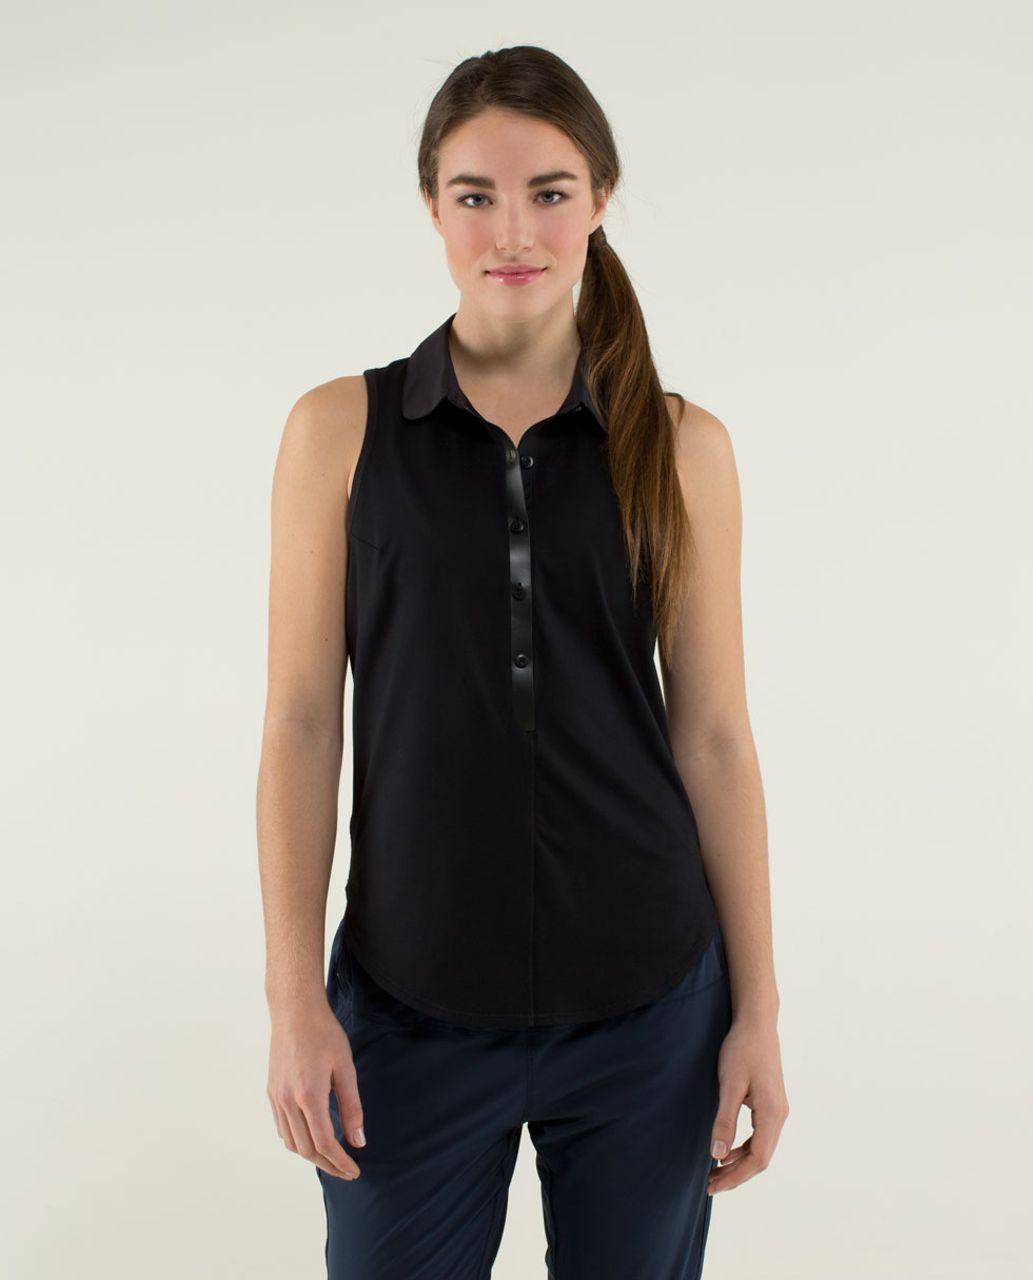 95d3588dd2 Lululemon Hot Hitter Sleeveless Polo - Black - lulu fanatics